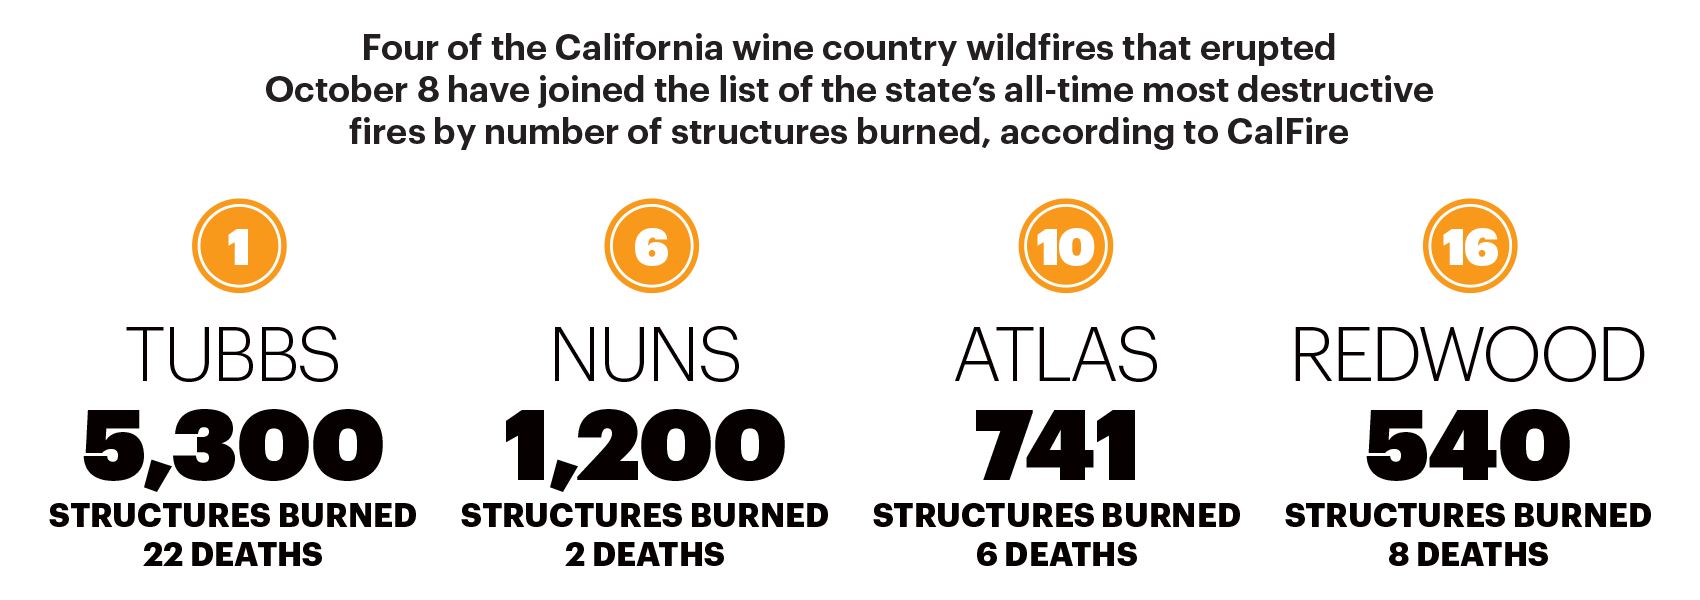 Statistic on the four California win country wildfires and how much damage they caused.